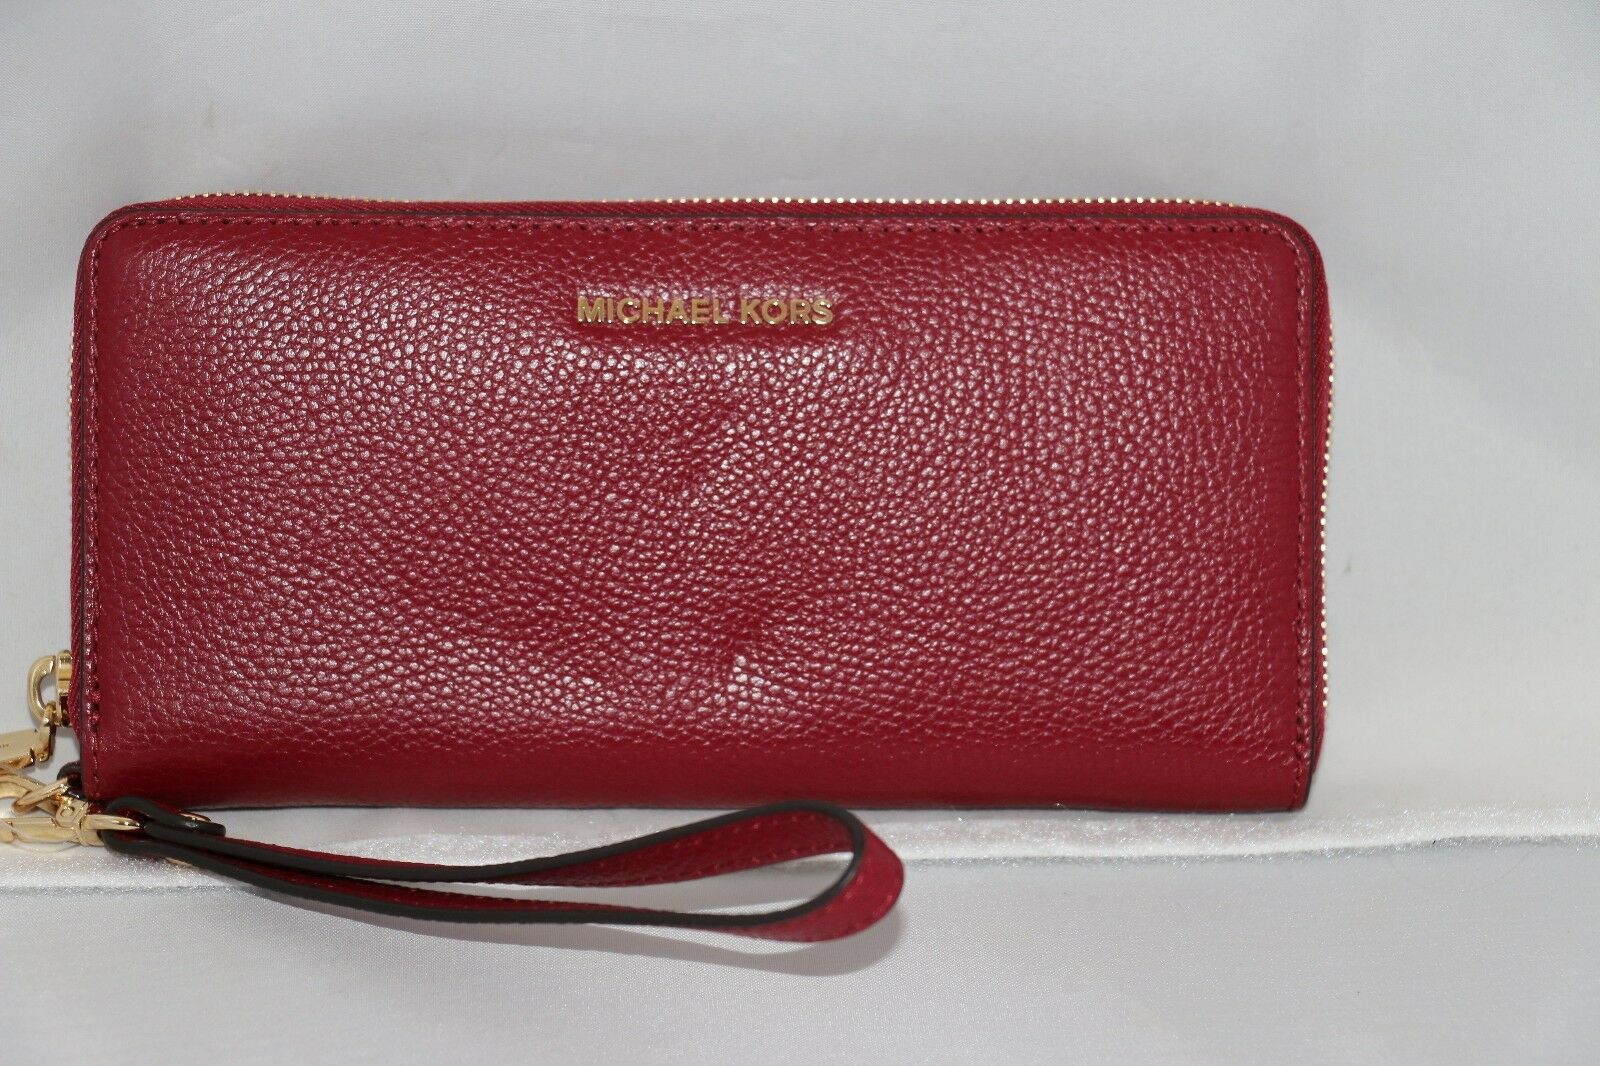 fa7dbff9f8dc Michael Kors Mercer Travel Leather CONTINENTAL Wristlet Wallet ...